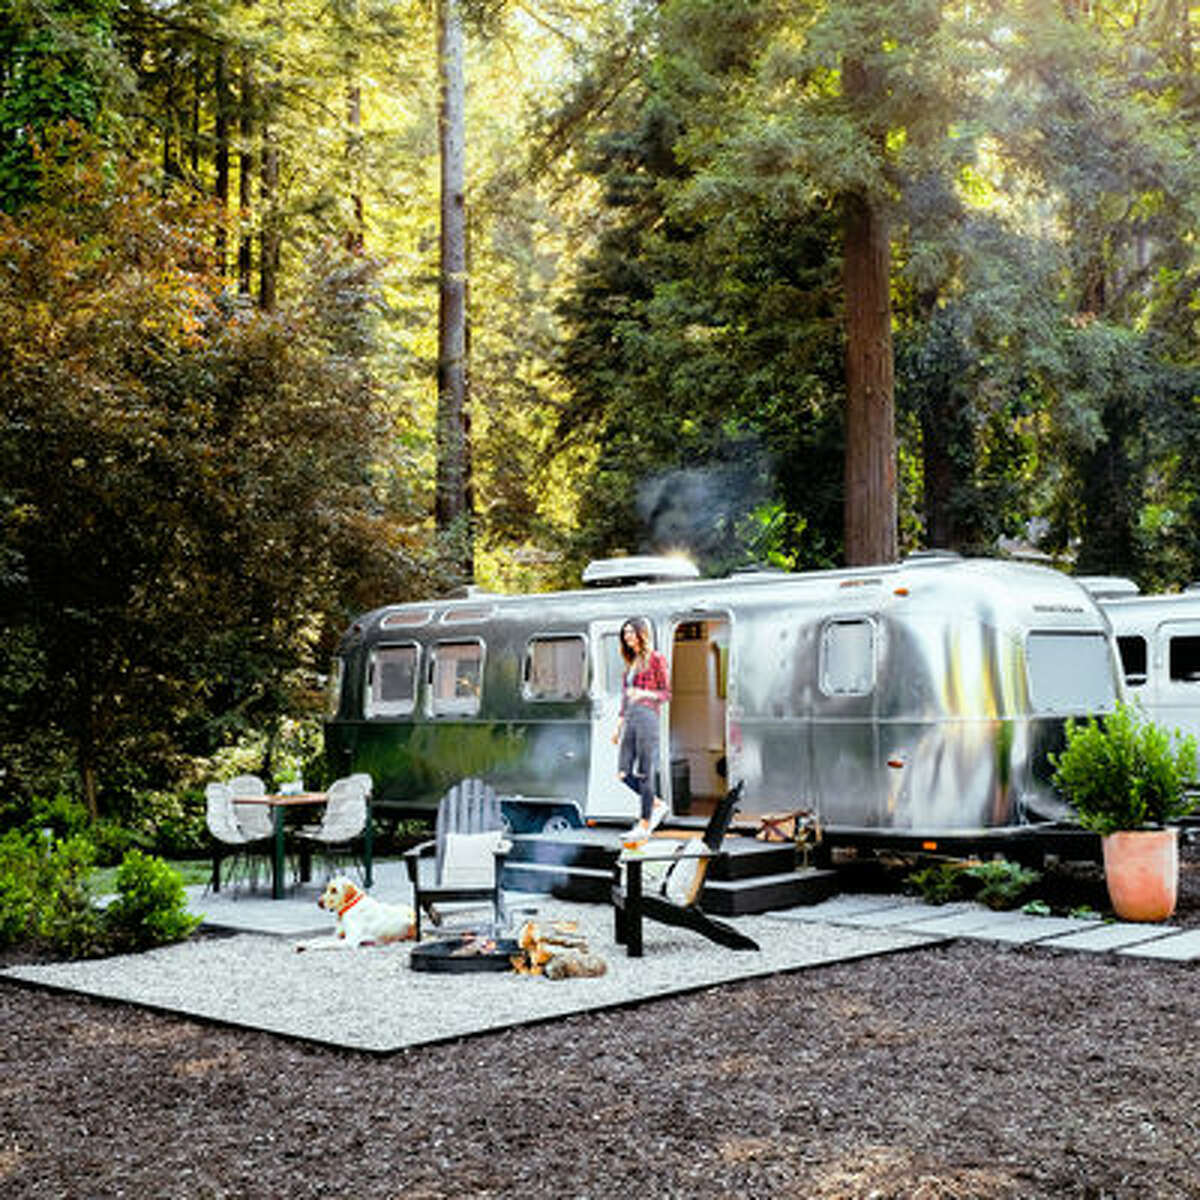 AutoCamp Russian River, Guerneville, CA Who said you can't camp and enjoy the California wine country at the same time? Autocamp (Airstream from $200/night, luxury tent from $175/night) has both sleek custom Airstreams and canvas tents fit for even the most hesitant camper. You'll sleep easy on a plush queen-sized Casper mattress and comfy sheets. The firepit and deck are perfect for relaxing with a glass of wine.